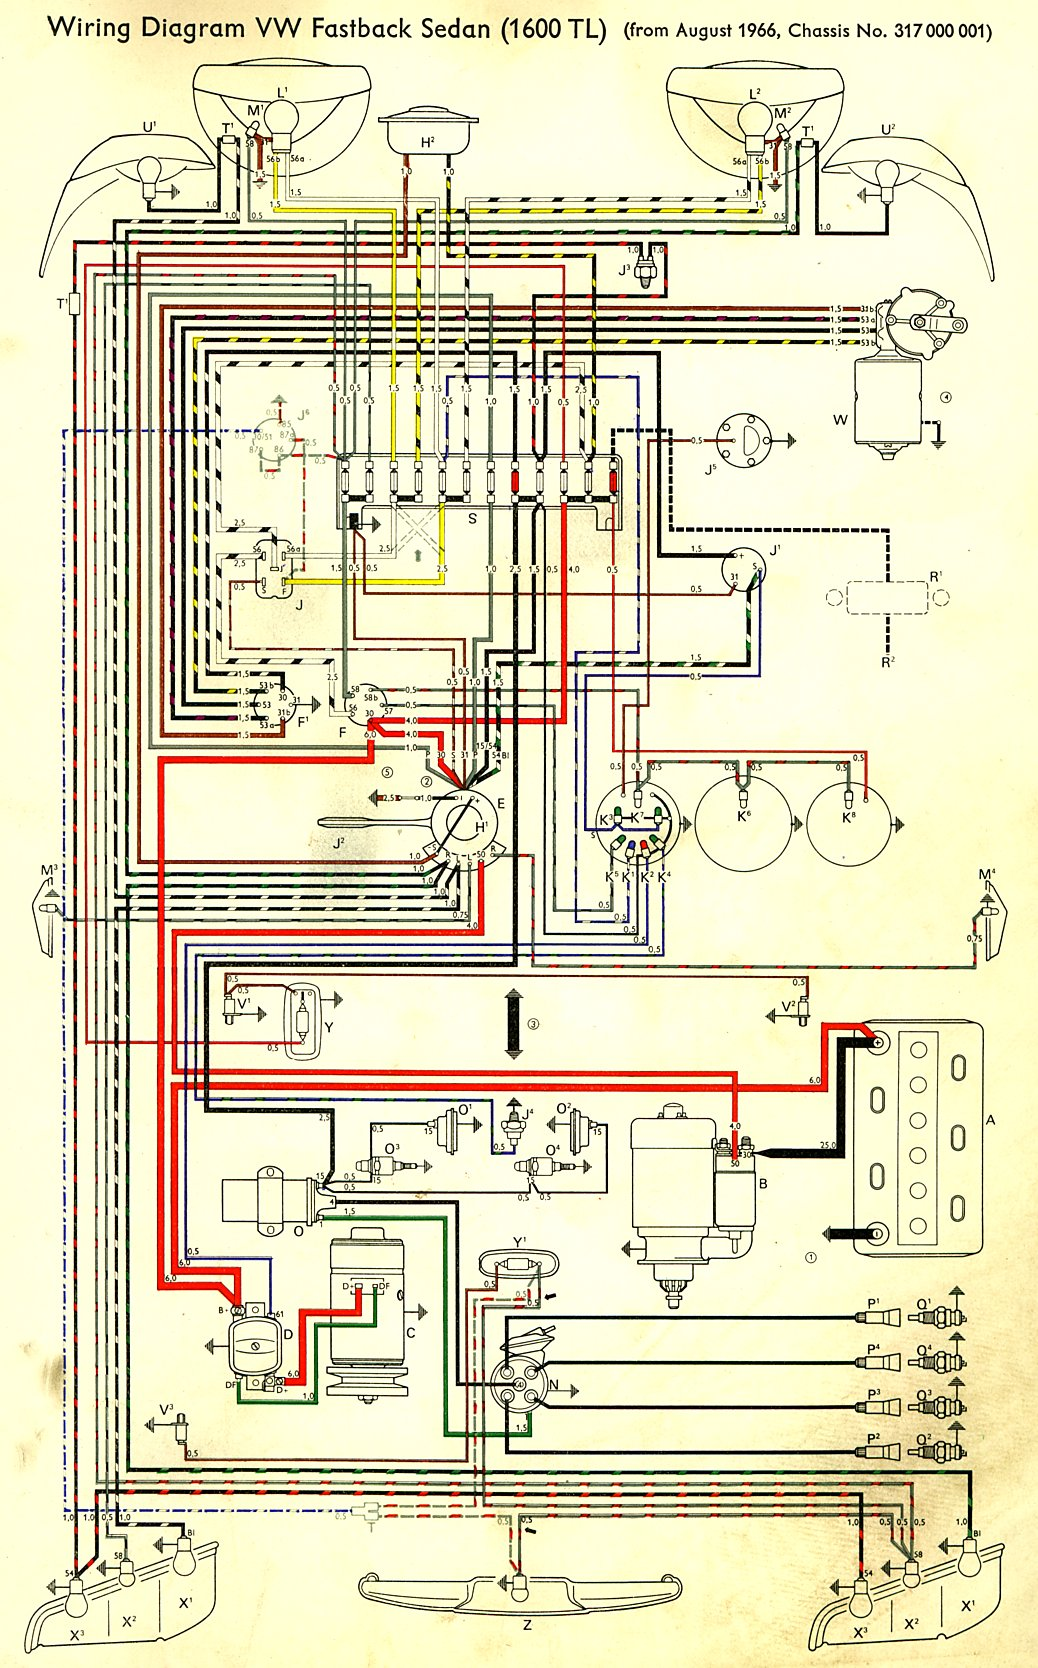 thesamba com type 3 wiring diagrams vw type 3 valve vw type 3 wiring diagram #2